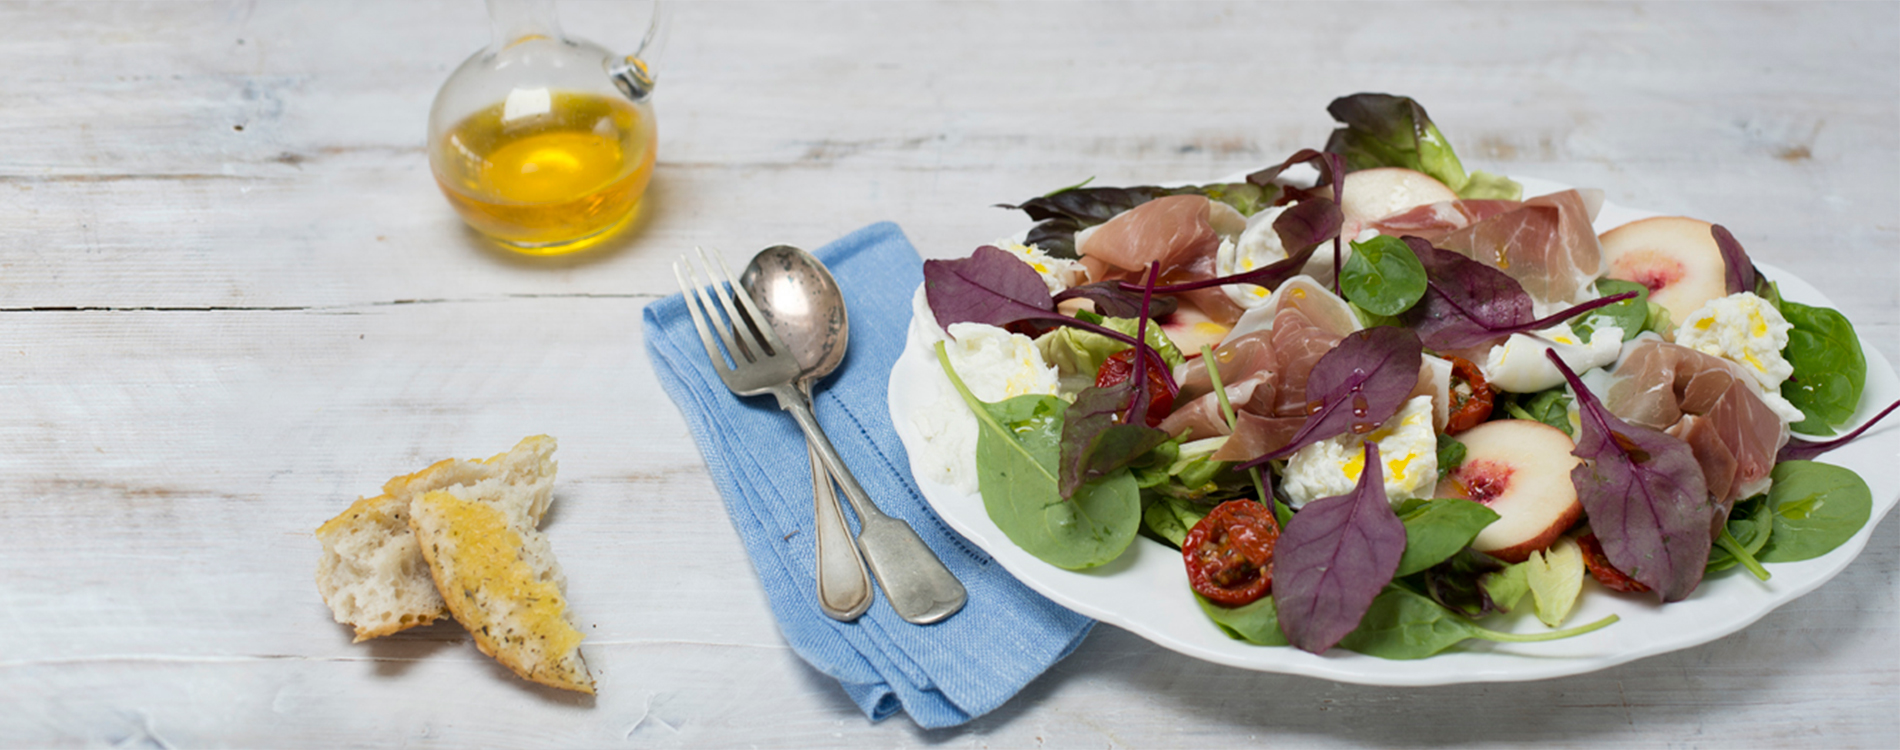 Salad with rapeseed oil salad dressing